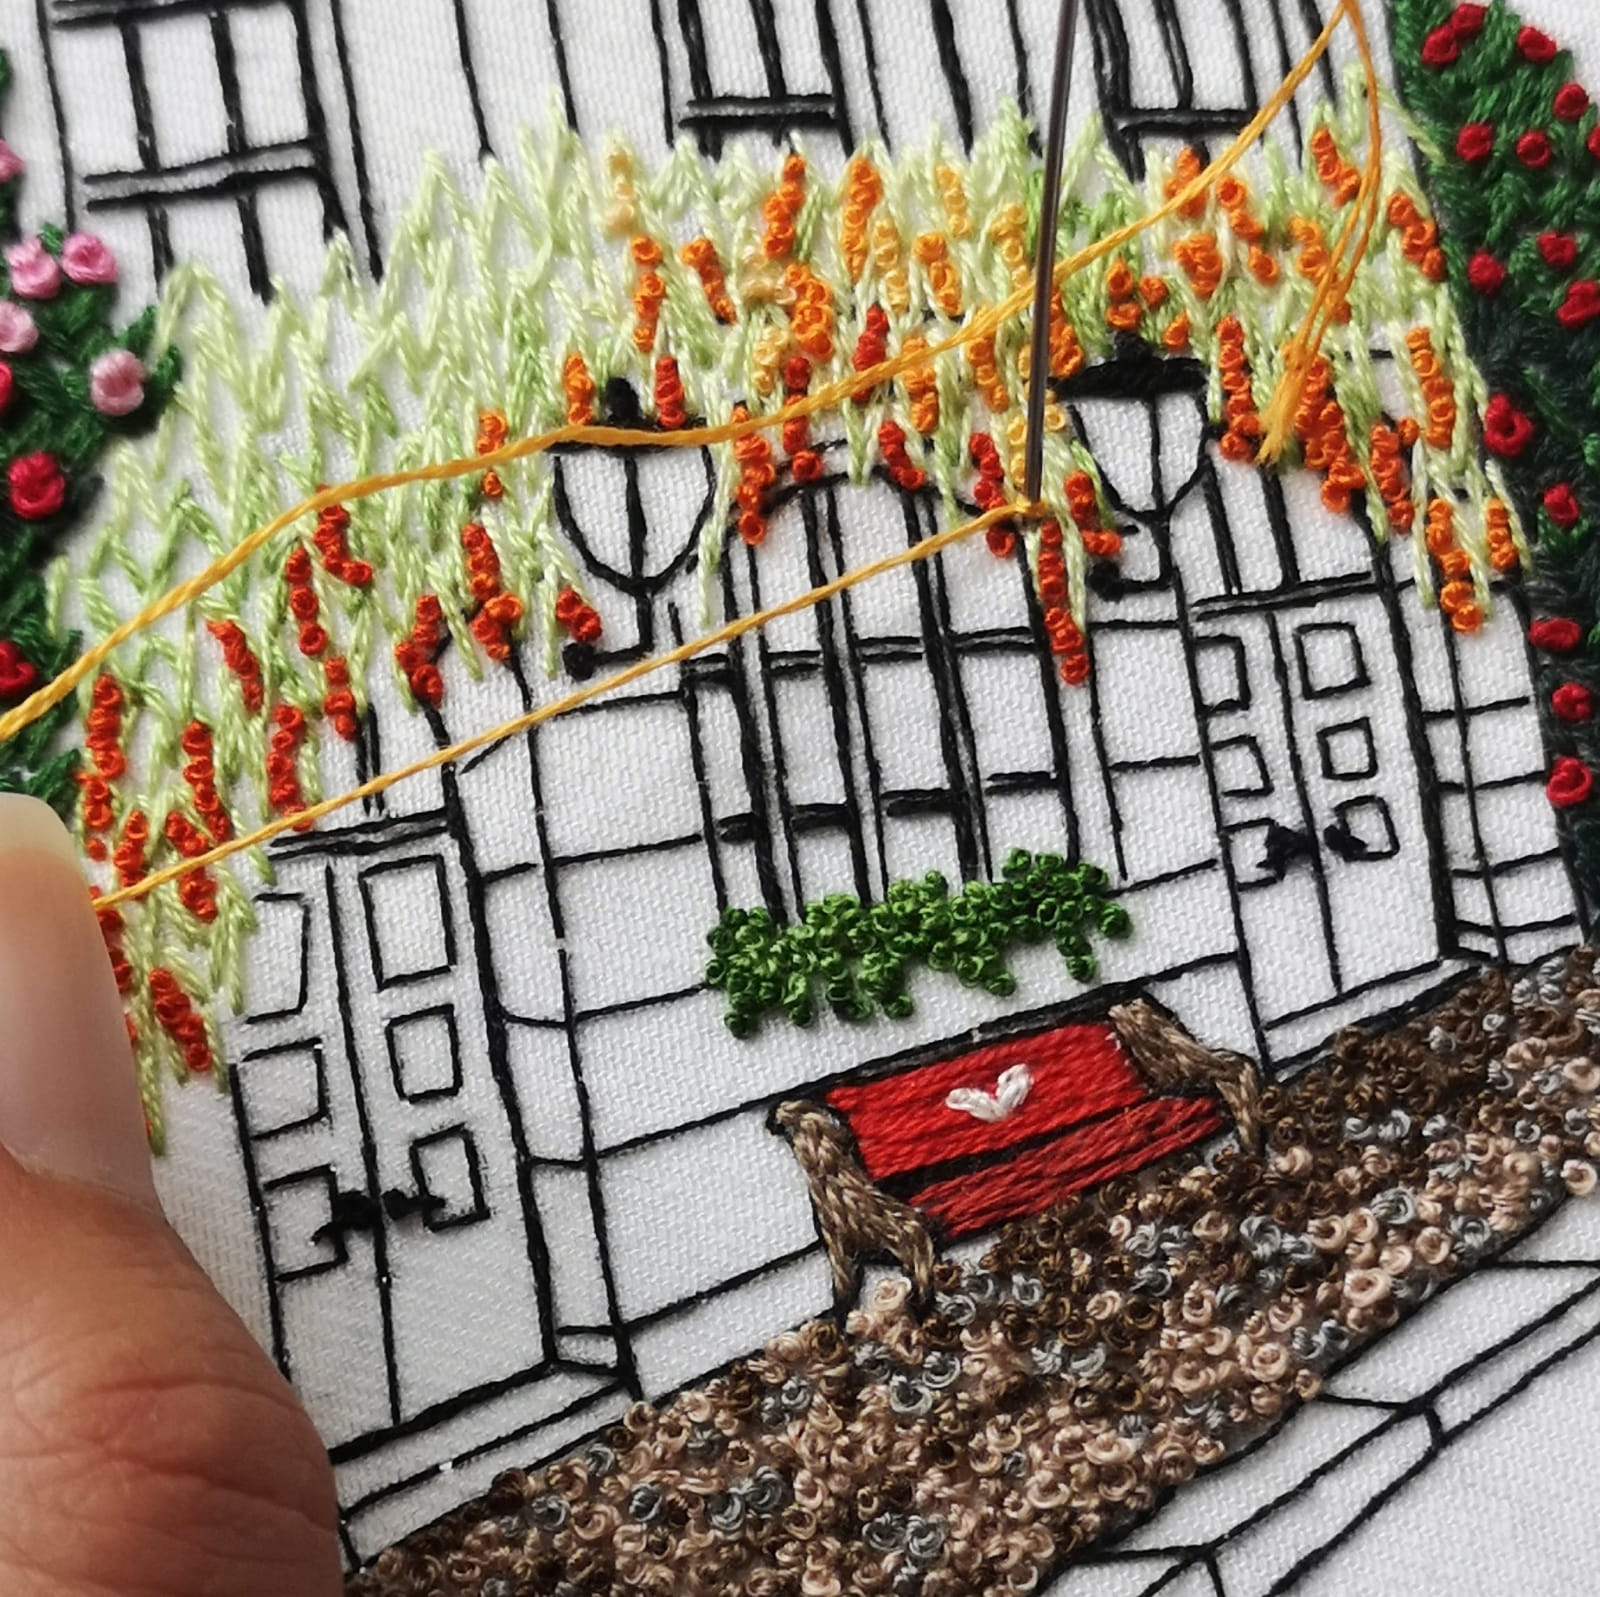 Summer Dream House Embroidery Pattern